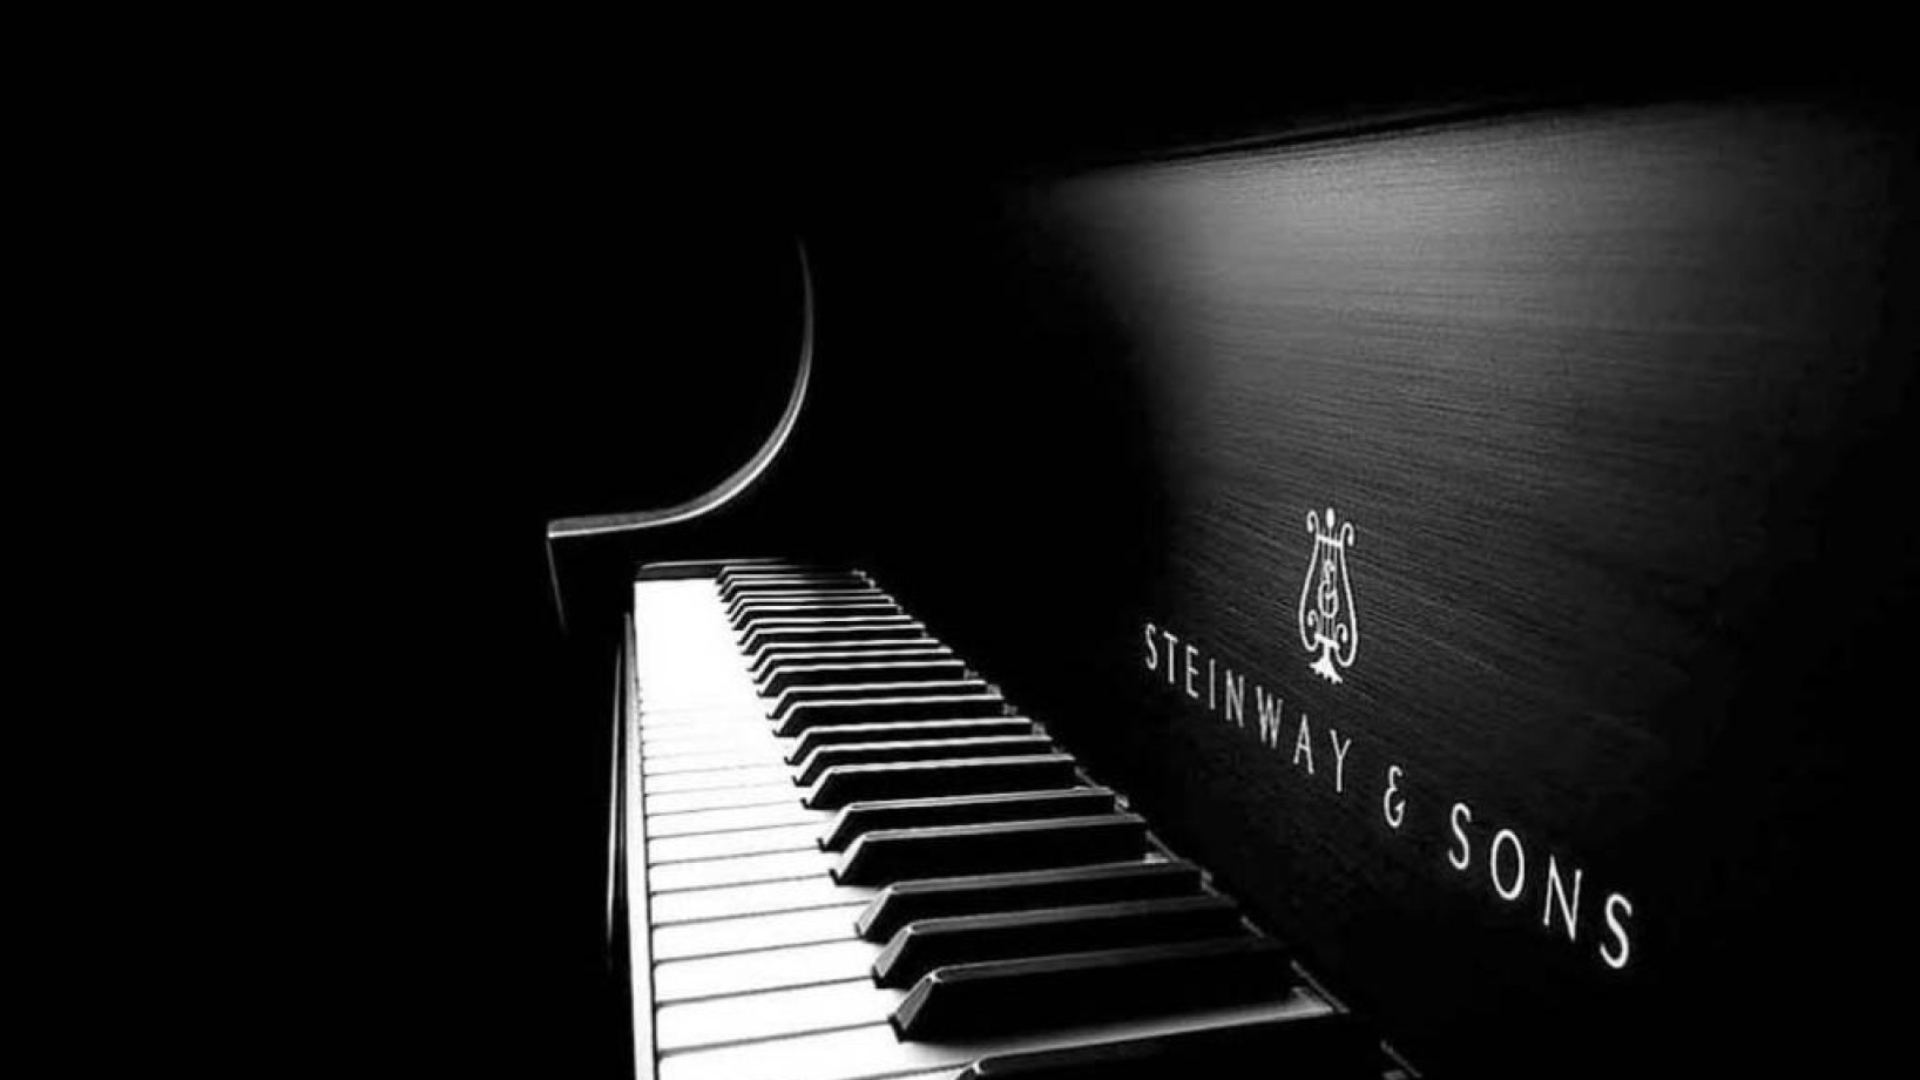 Steinway piano wallpaper for desktop 1920x1080 full hd - Cool piano backgrounds ...